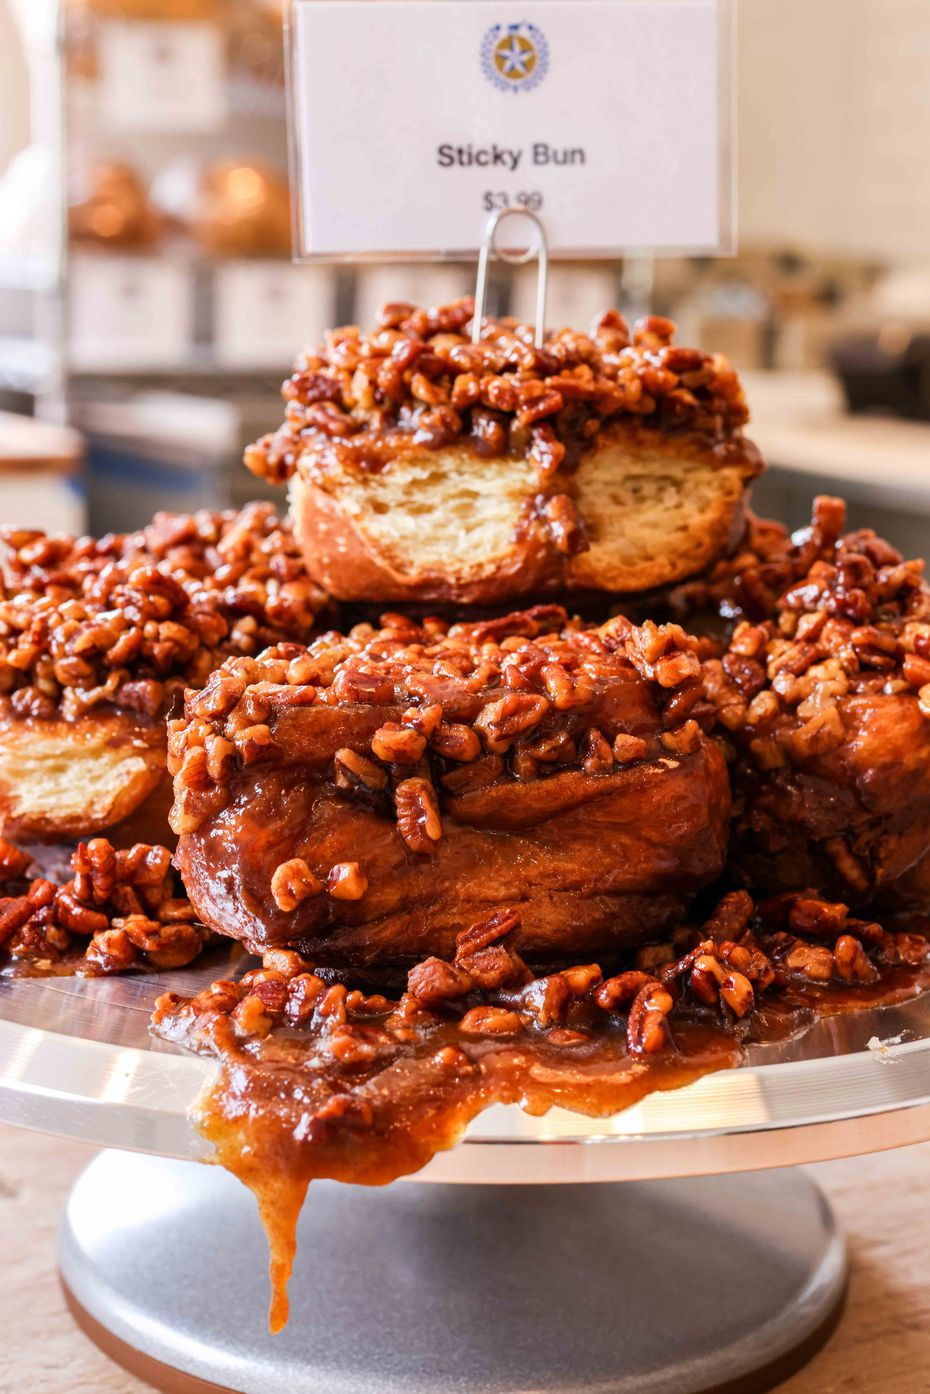 Sticky buns are one of several sweet treats at Empire Baking Company in East Dallas.